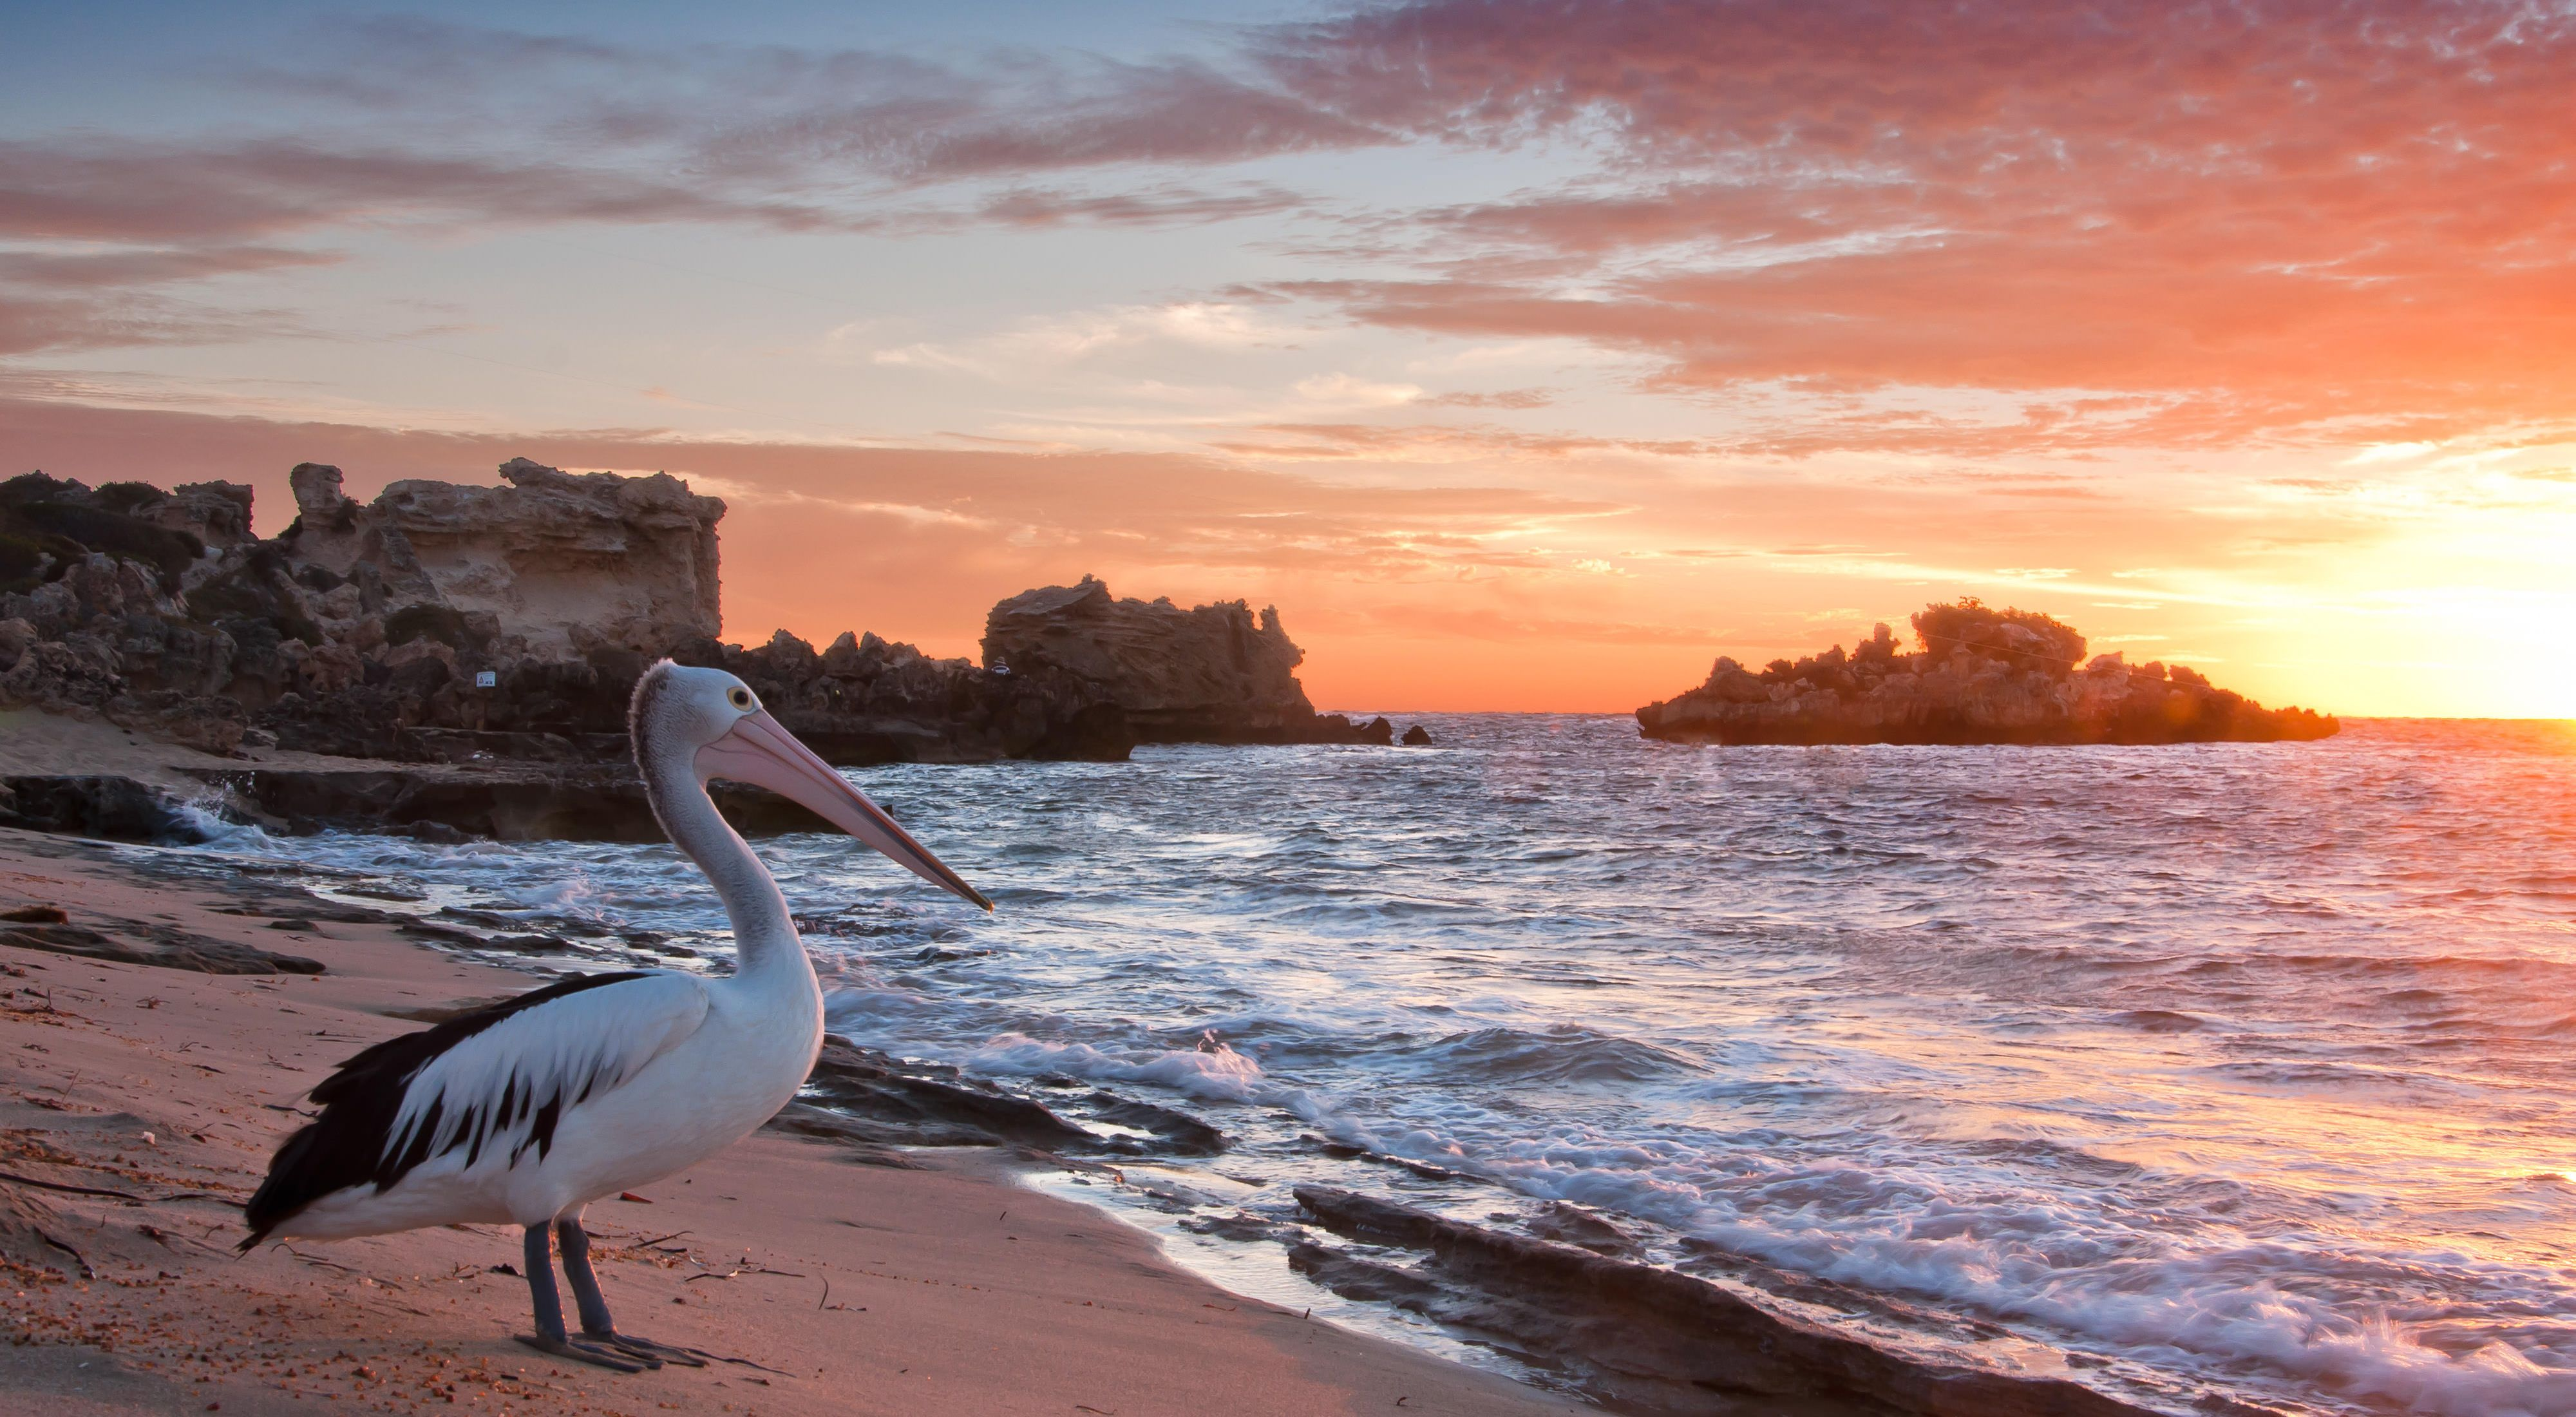 pelican on a beach at sunset